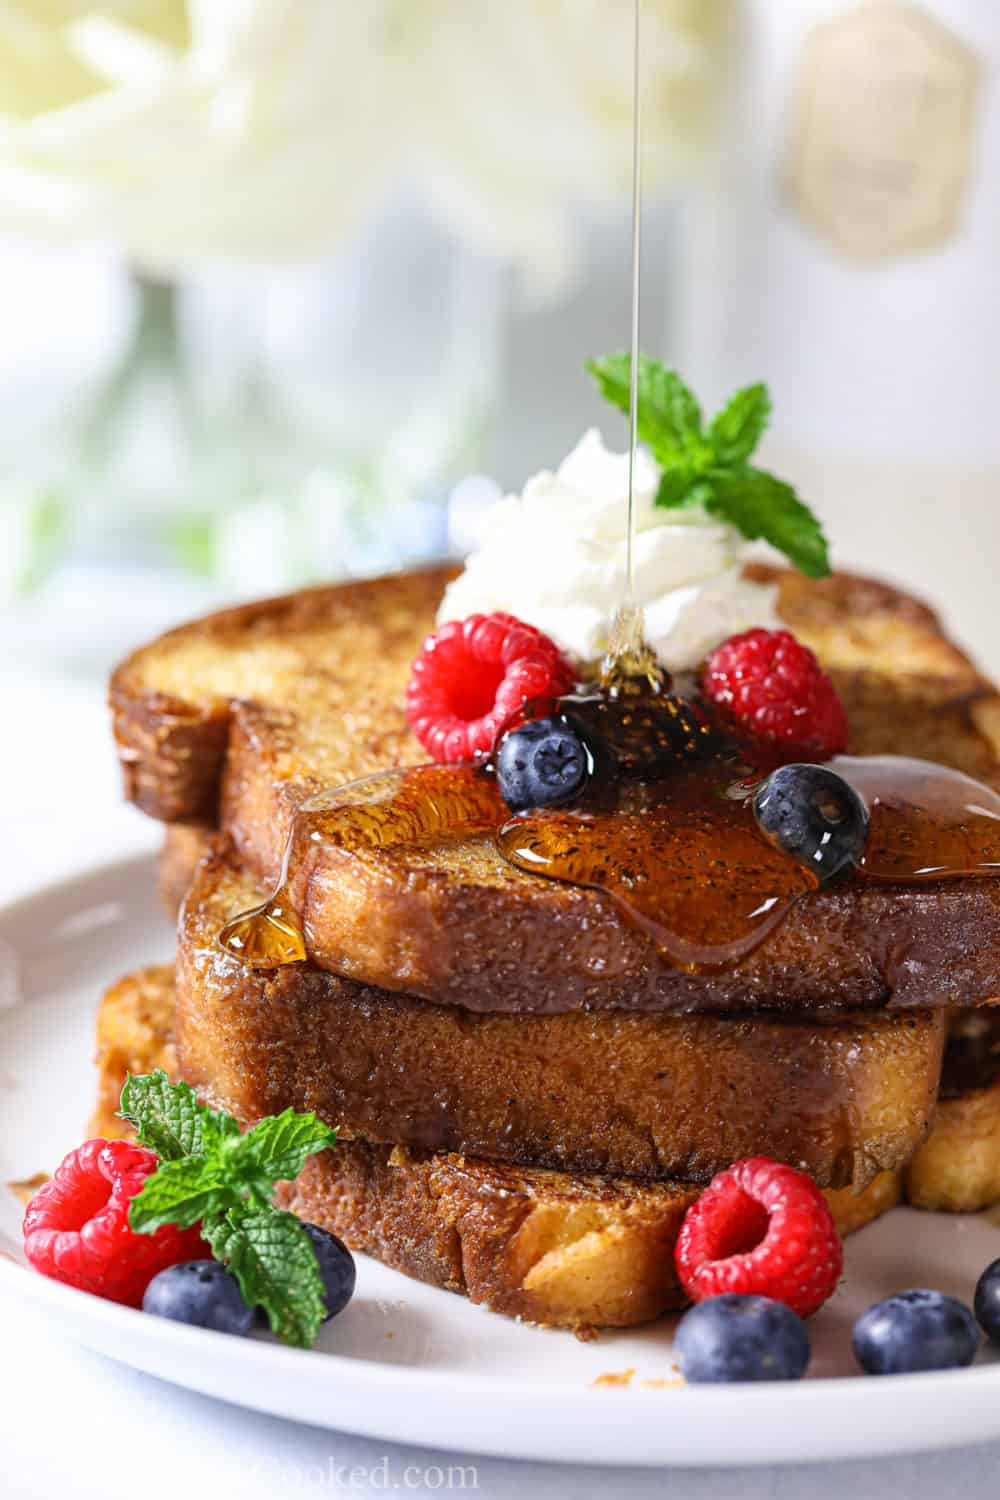 a stack of fluffy brioche french toast with berries, whipped cream and syrup on top